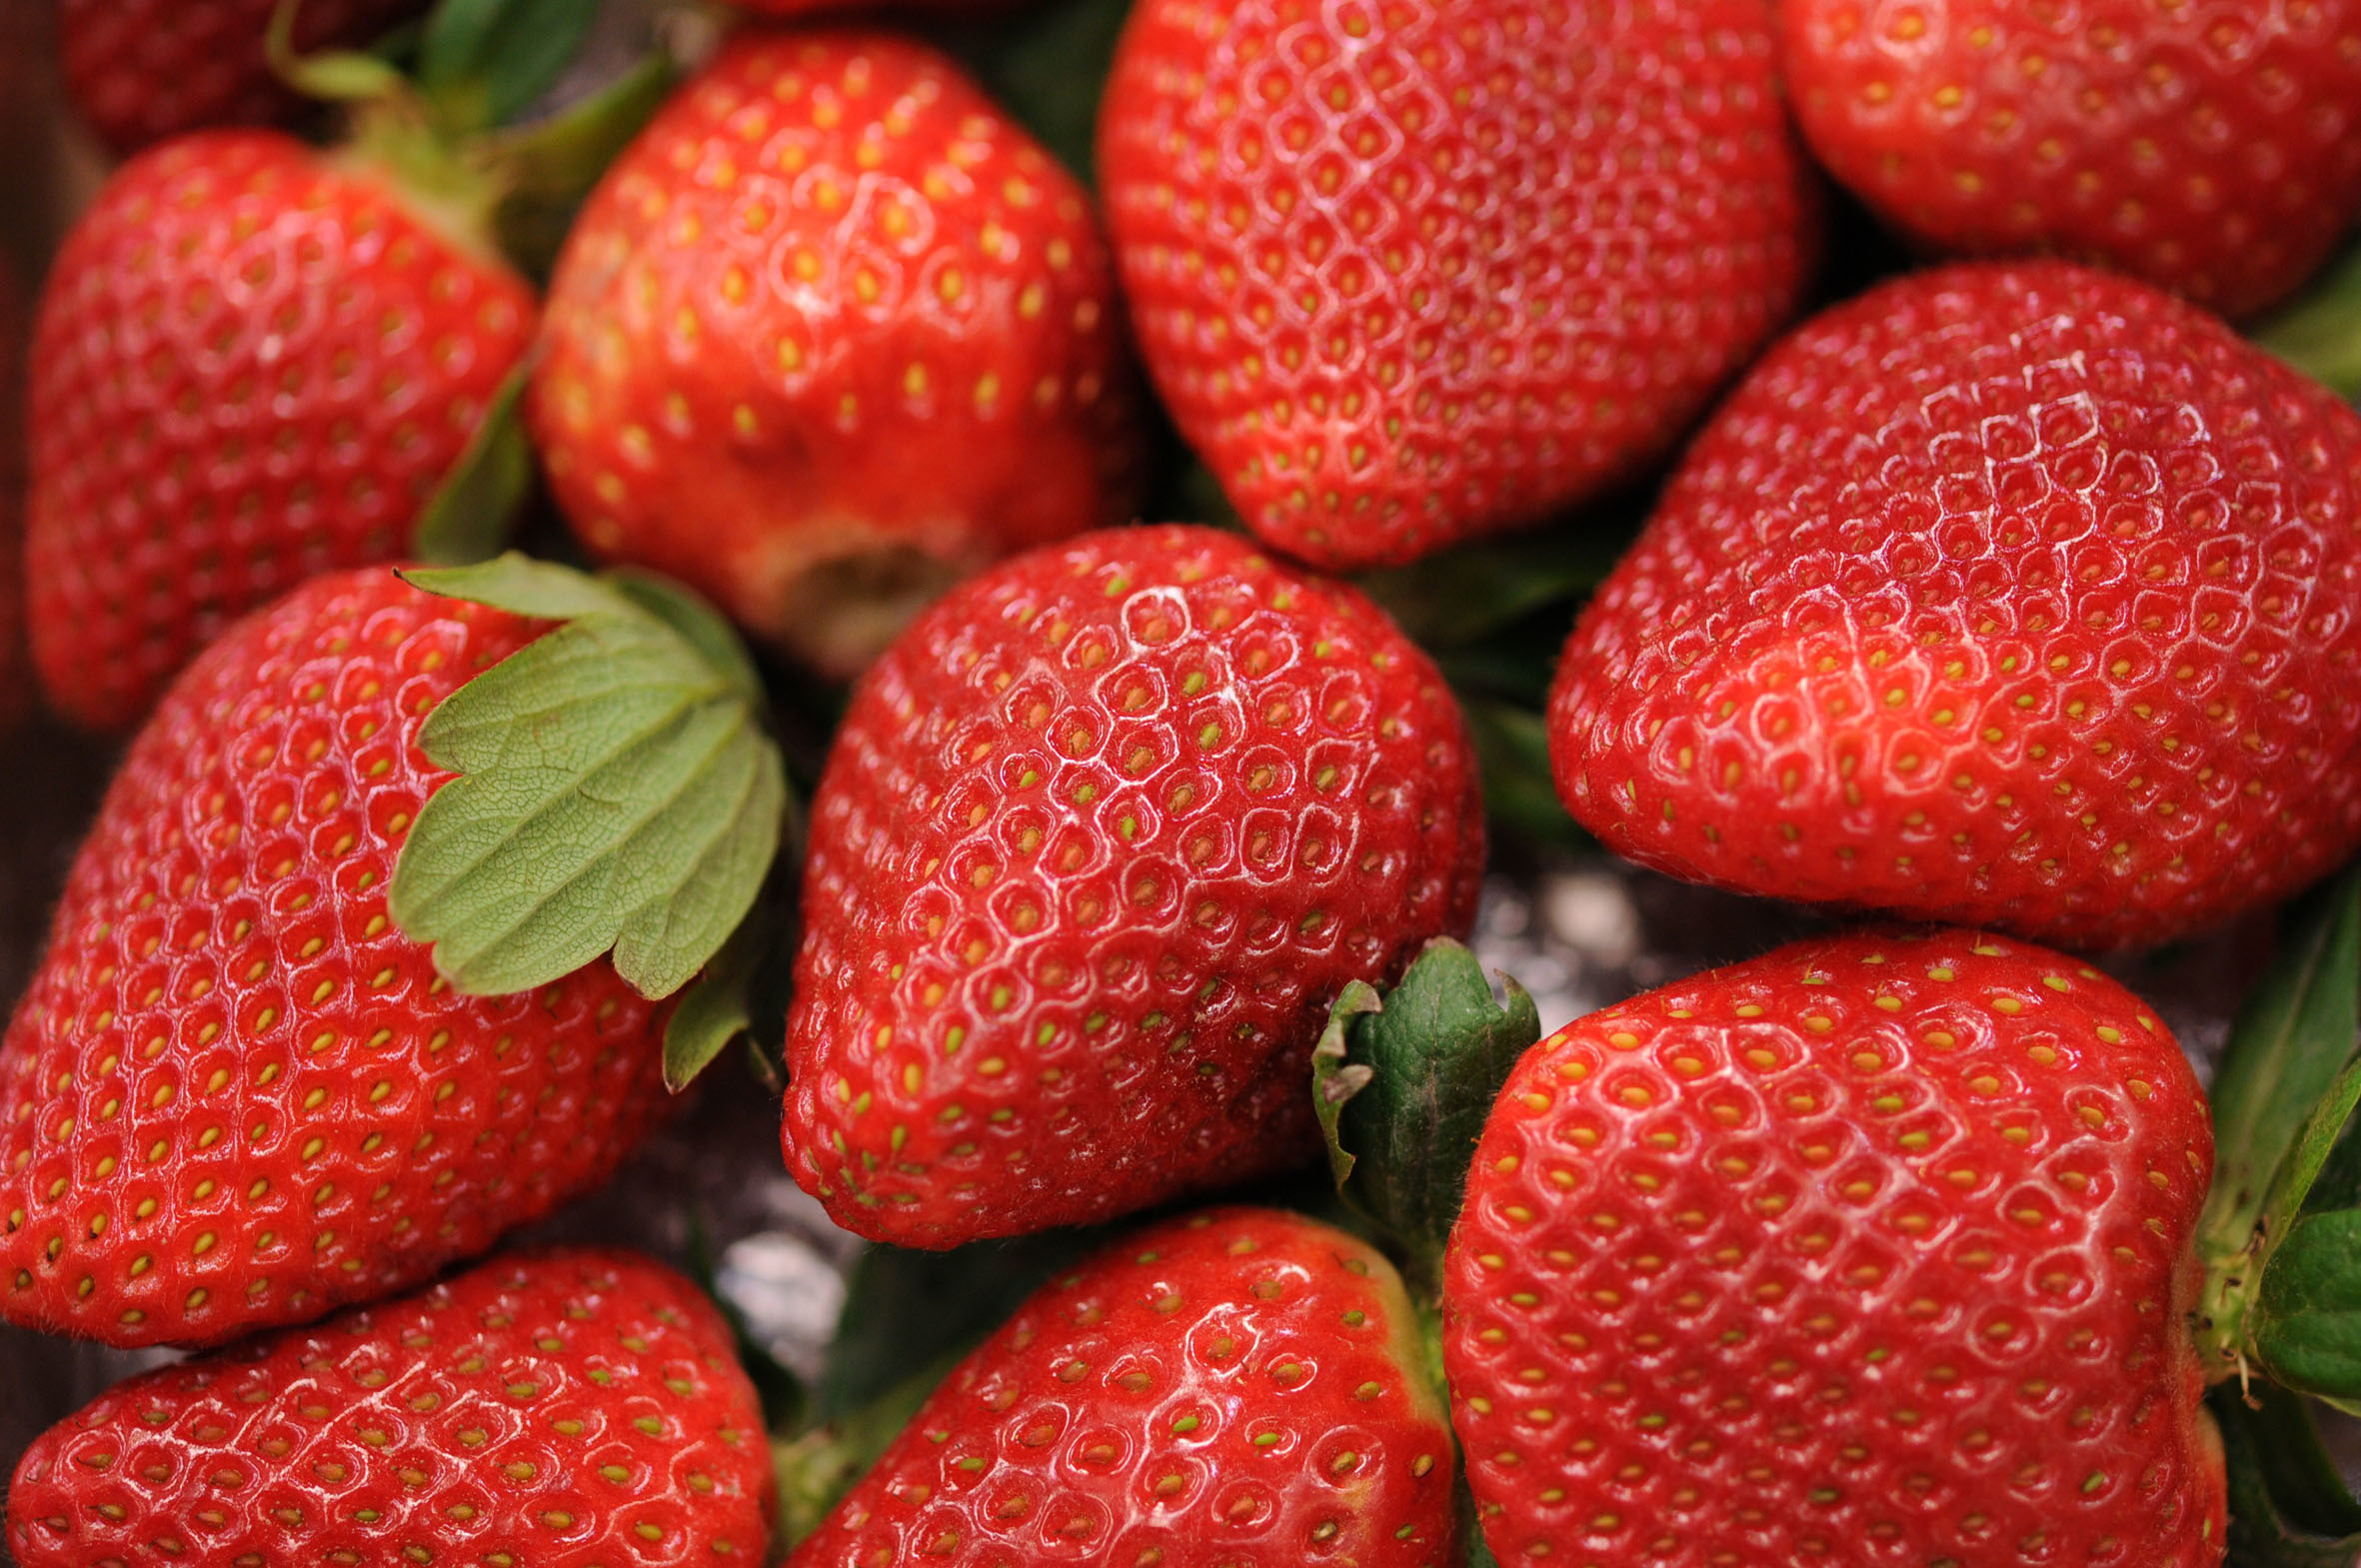 fruit-and-vegetable-market-report-february-2014-strawberries.jpg?mtime=20170922113431#asset:11355